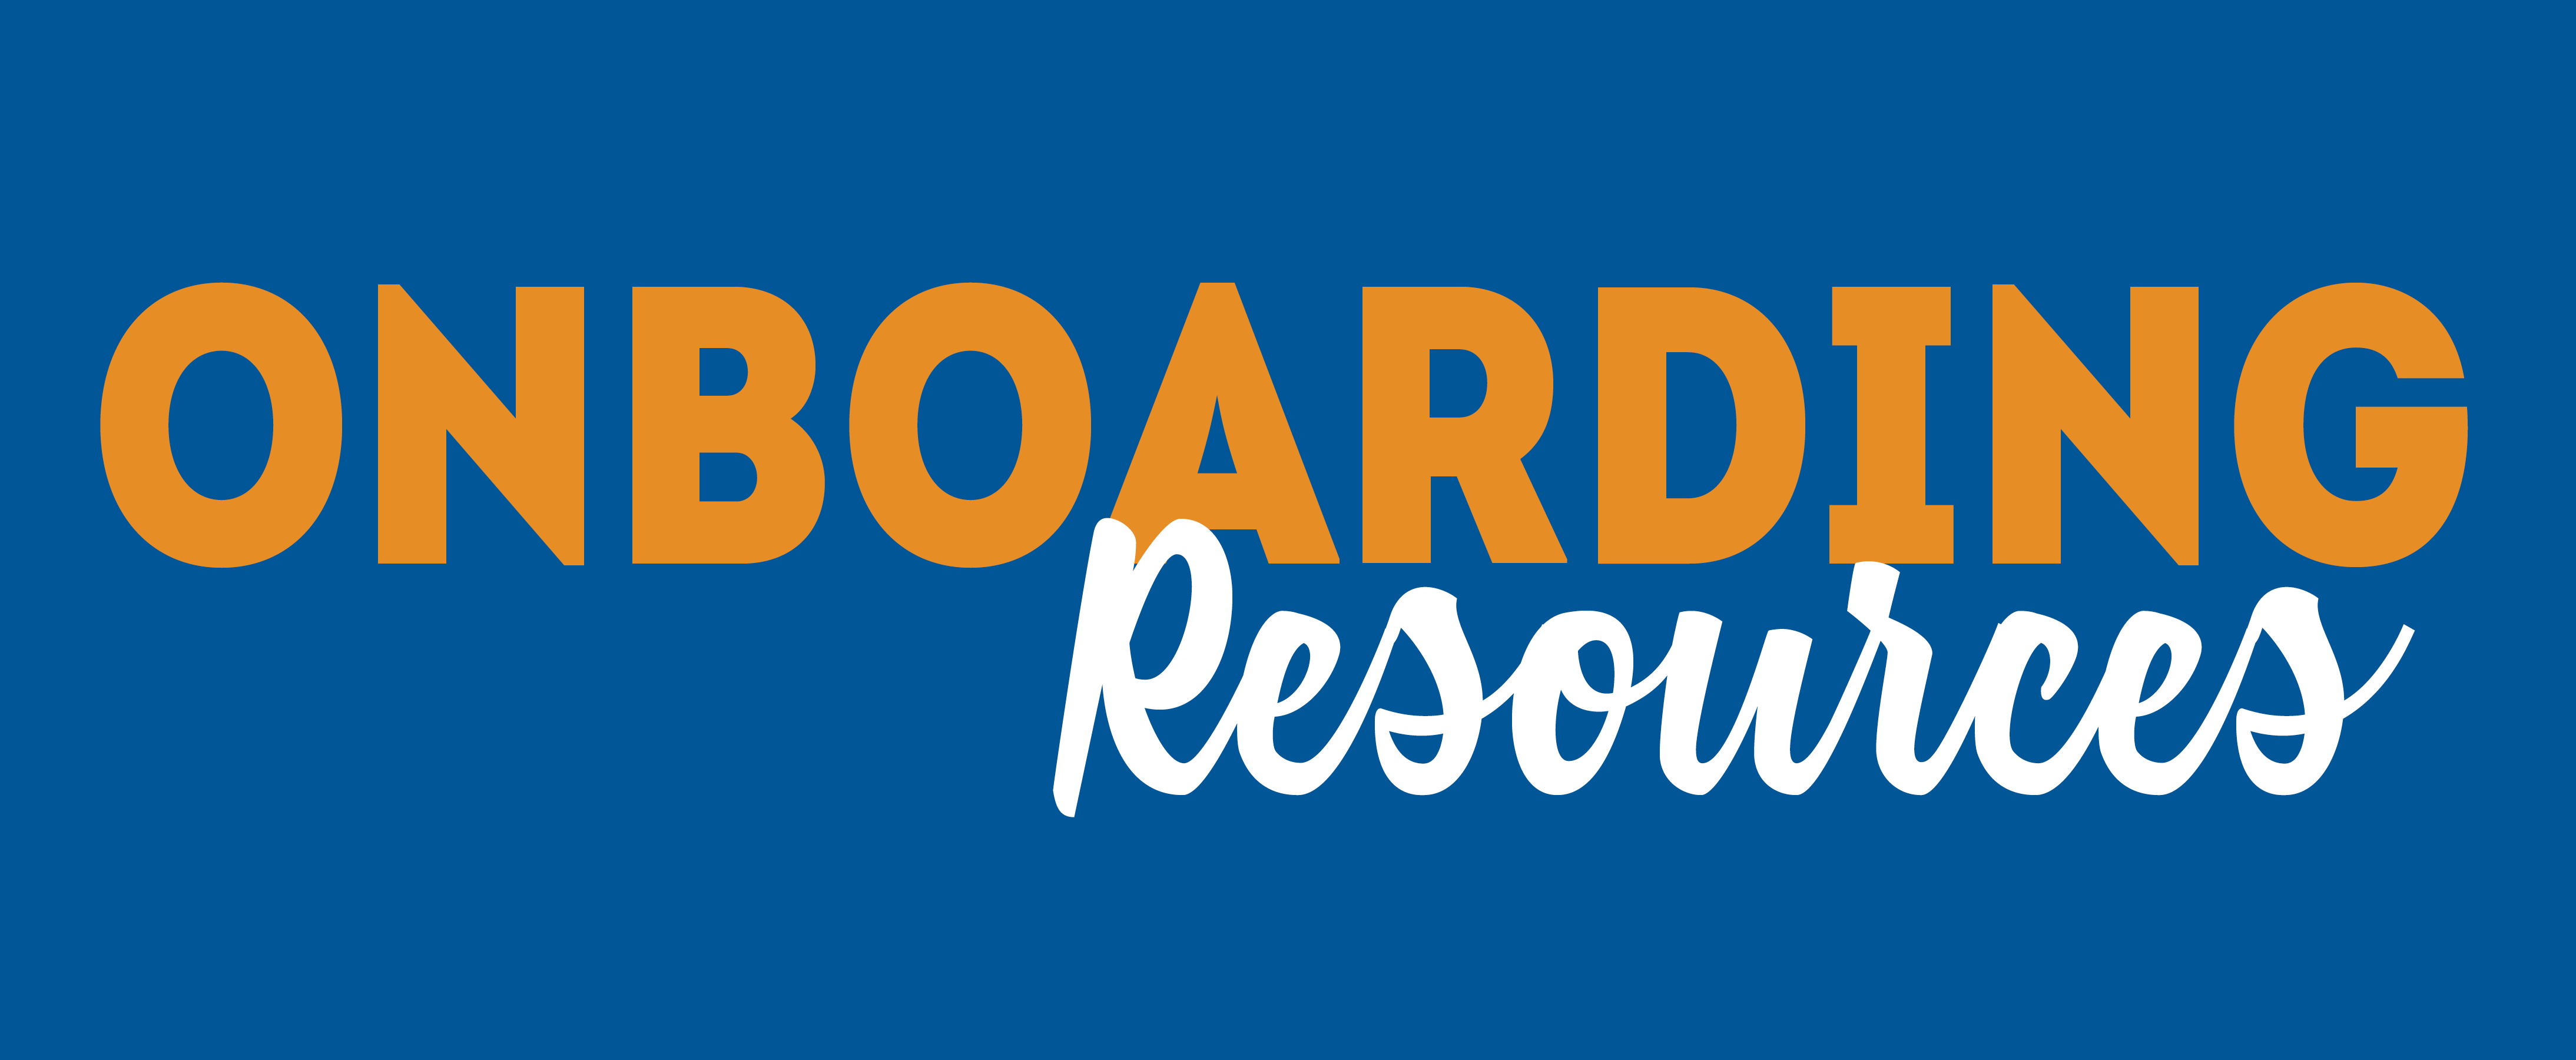 onboarding-resources